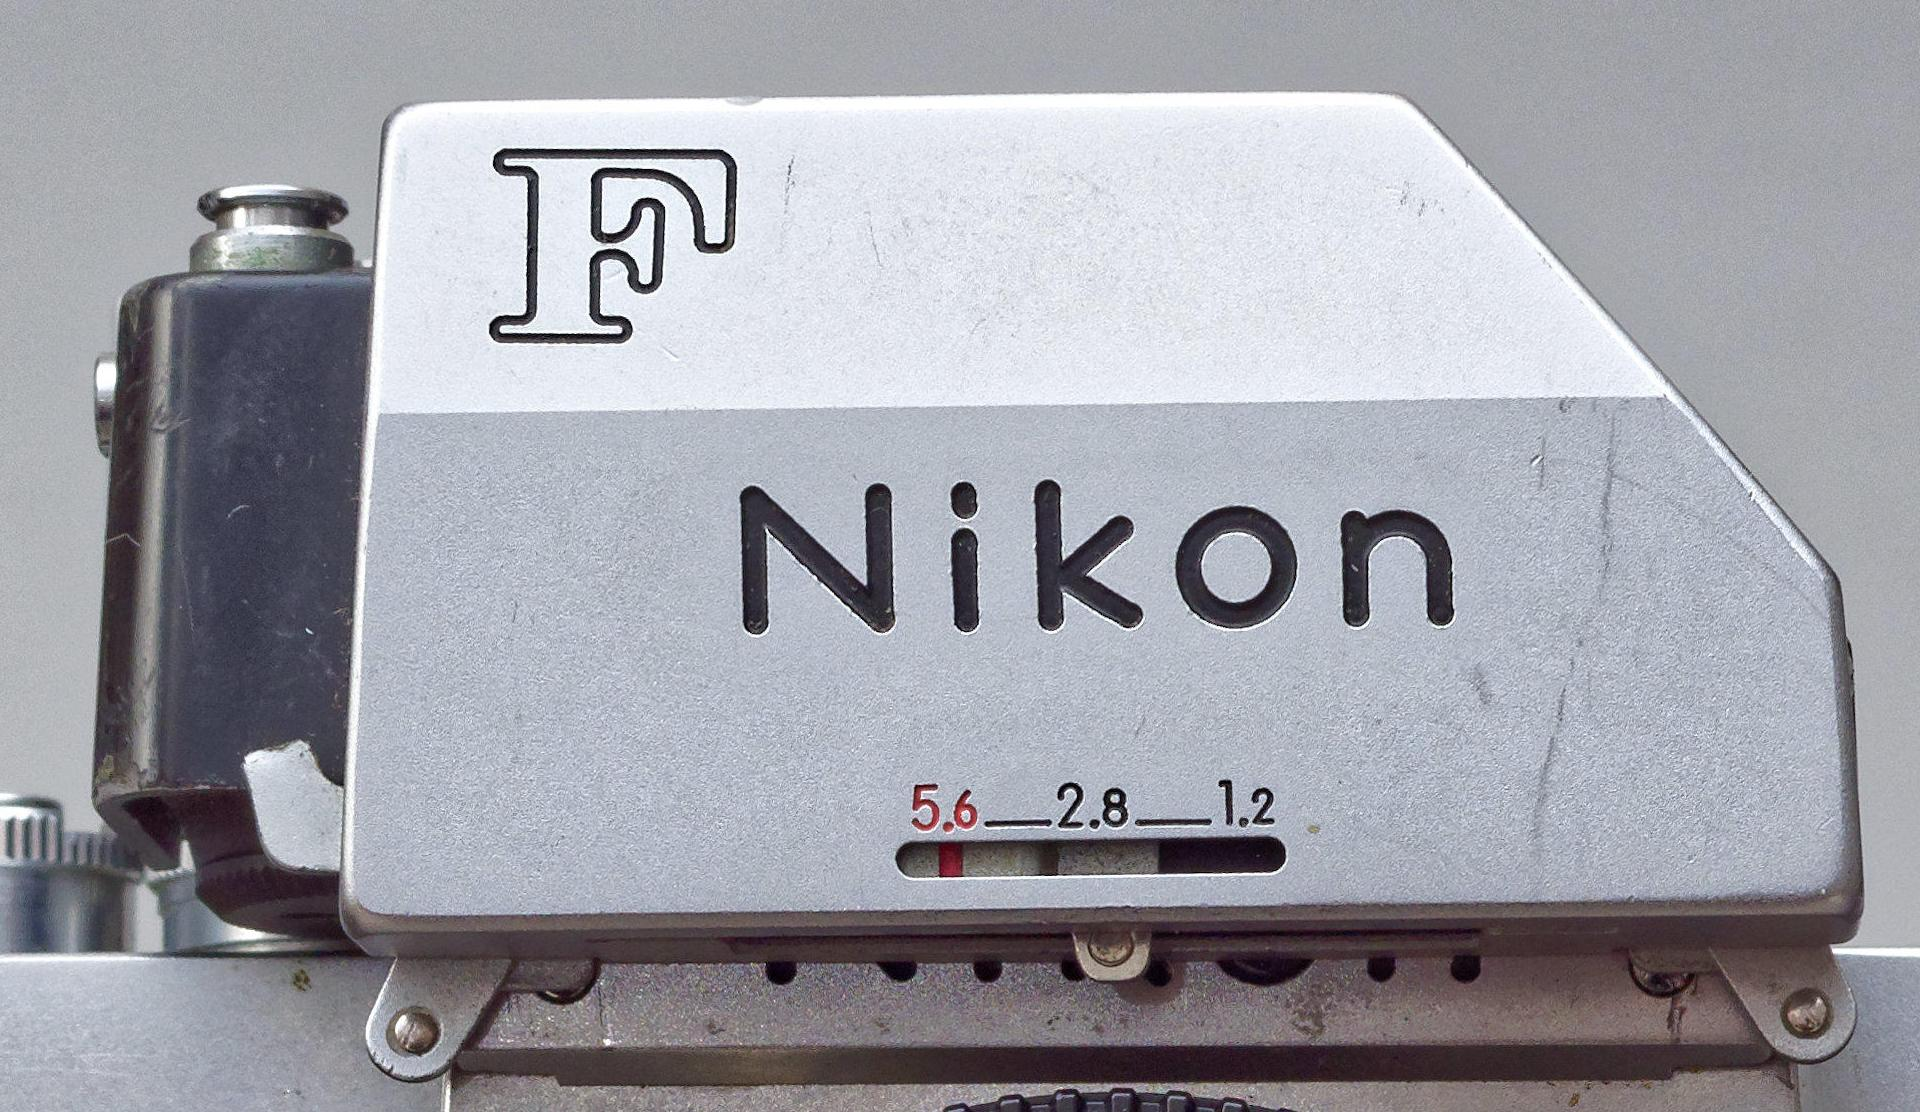 This should be Nikon-F-6-detail.jpeg.  Is it missing?